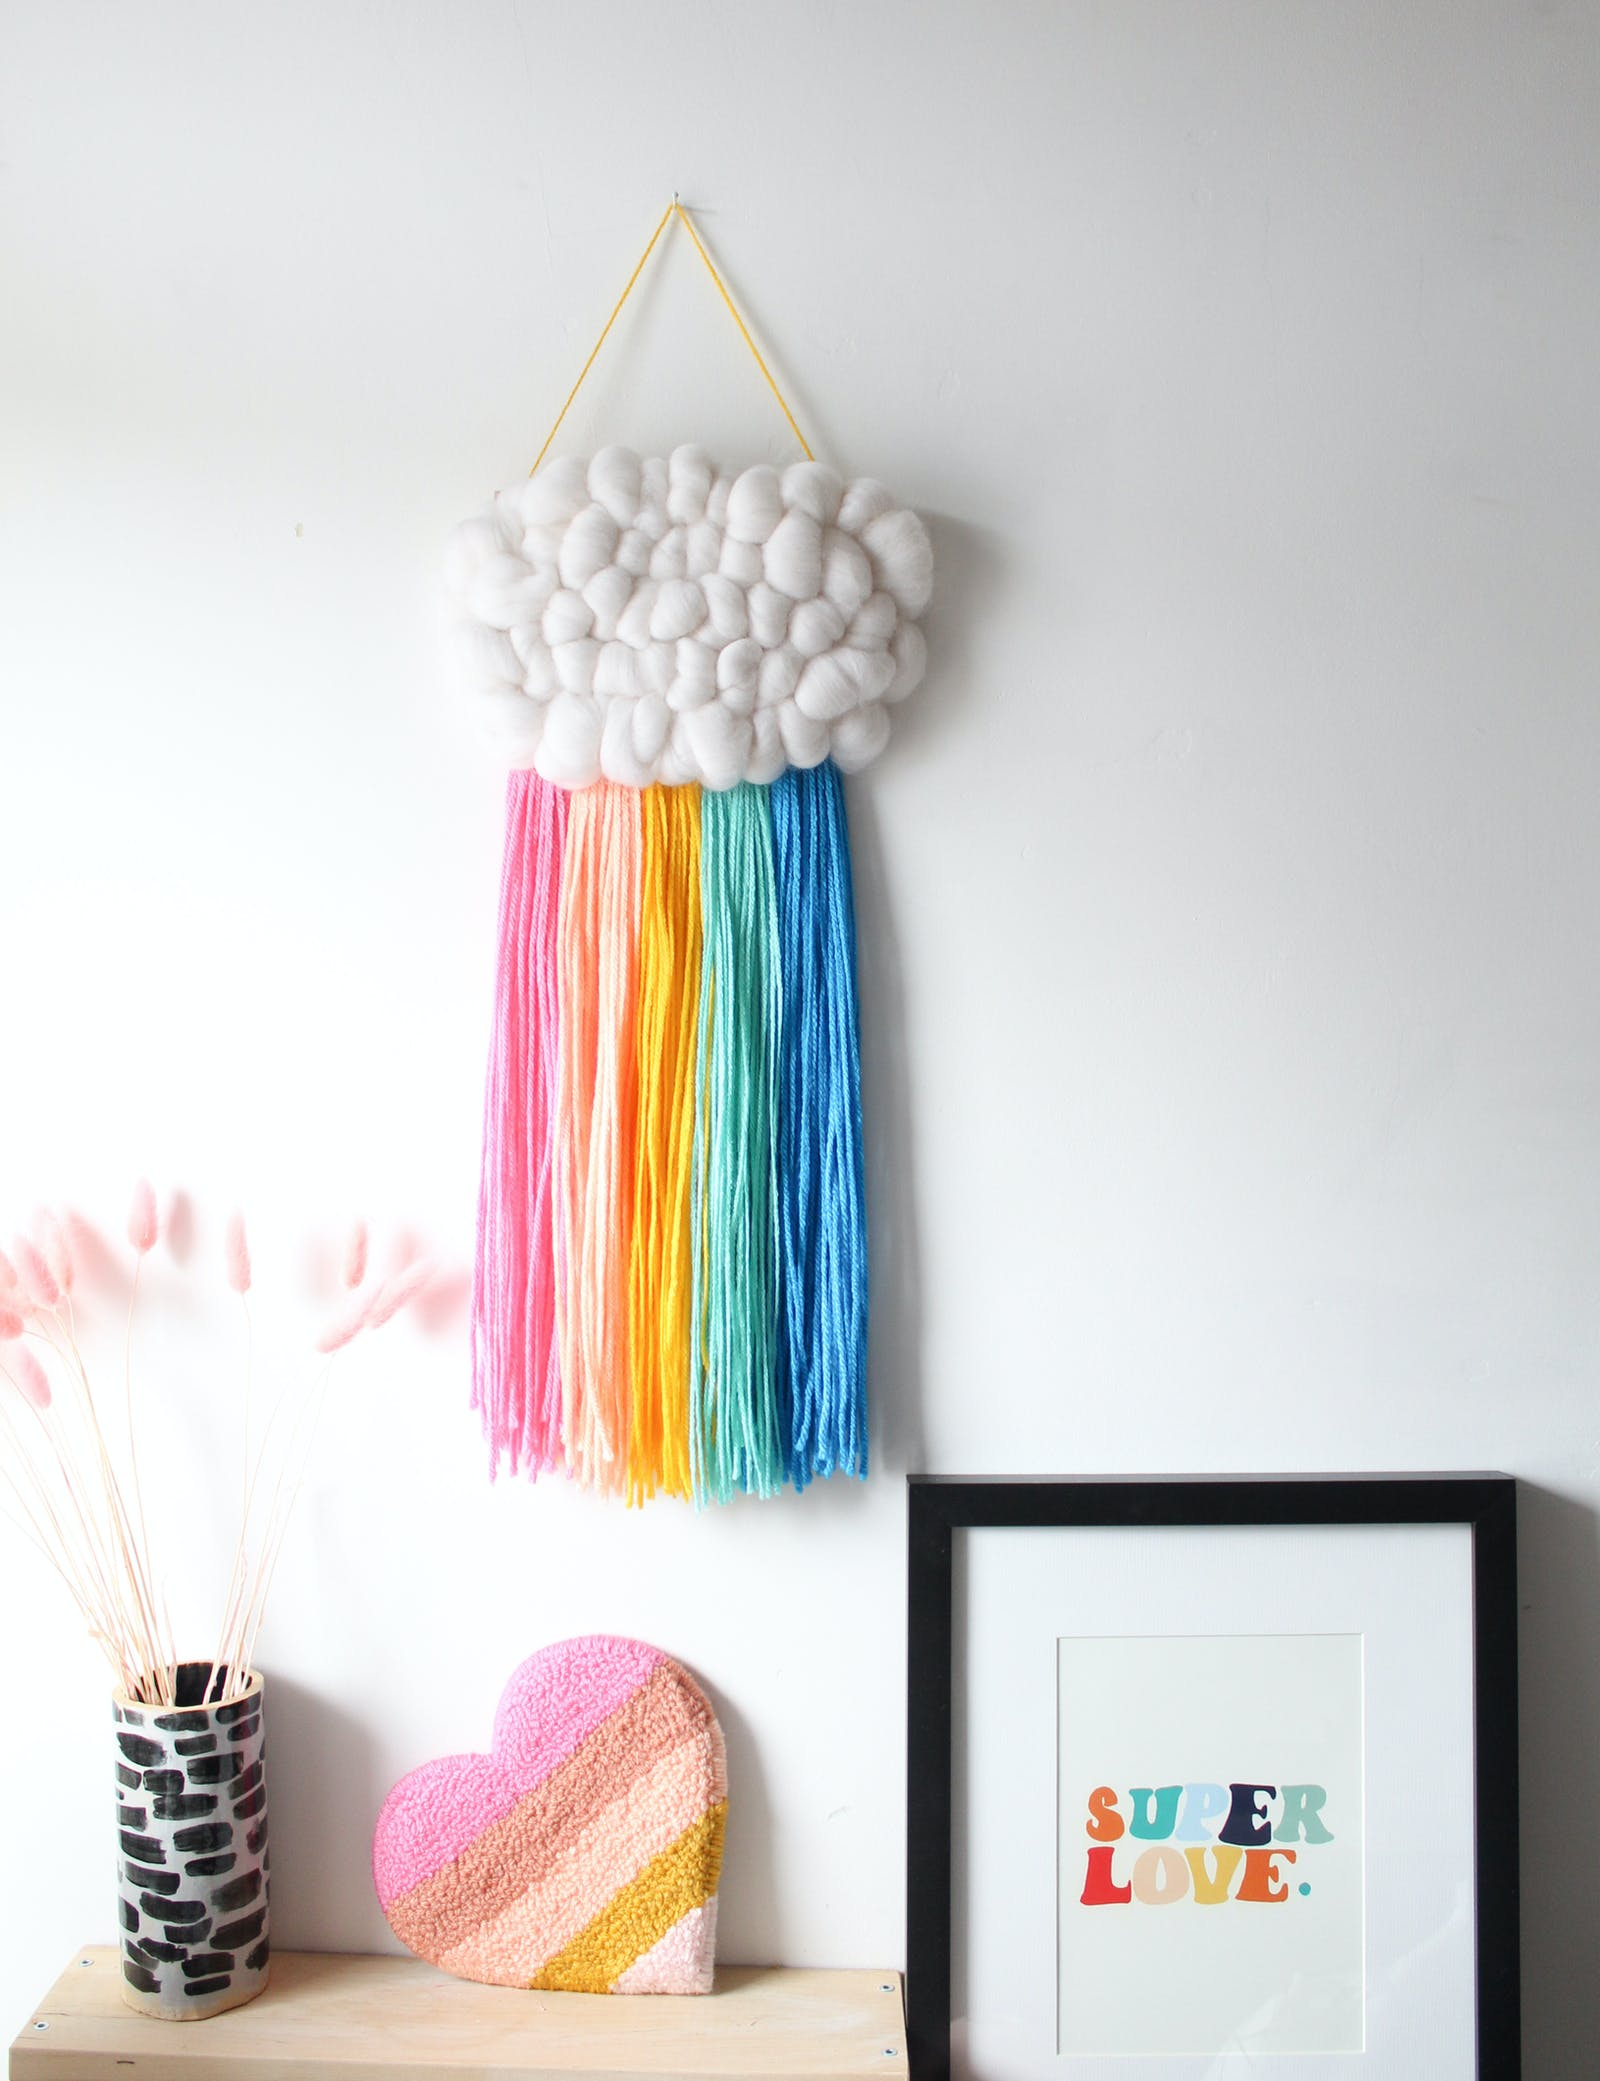 Hanging wall art, textured cloud with rainbow threads